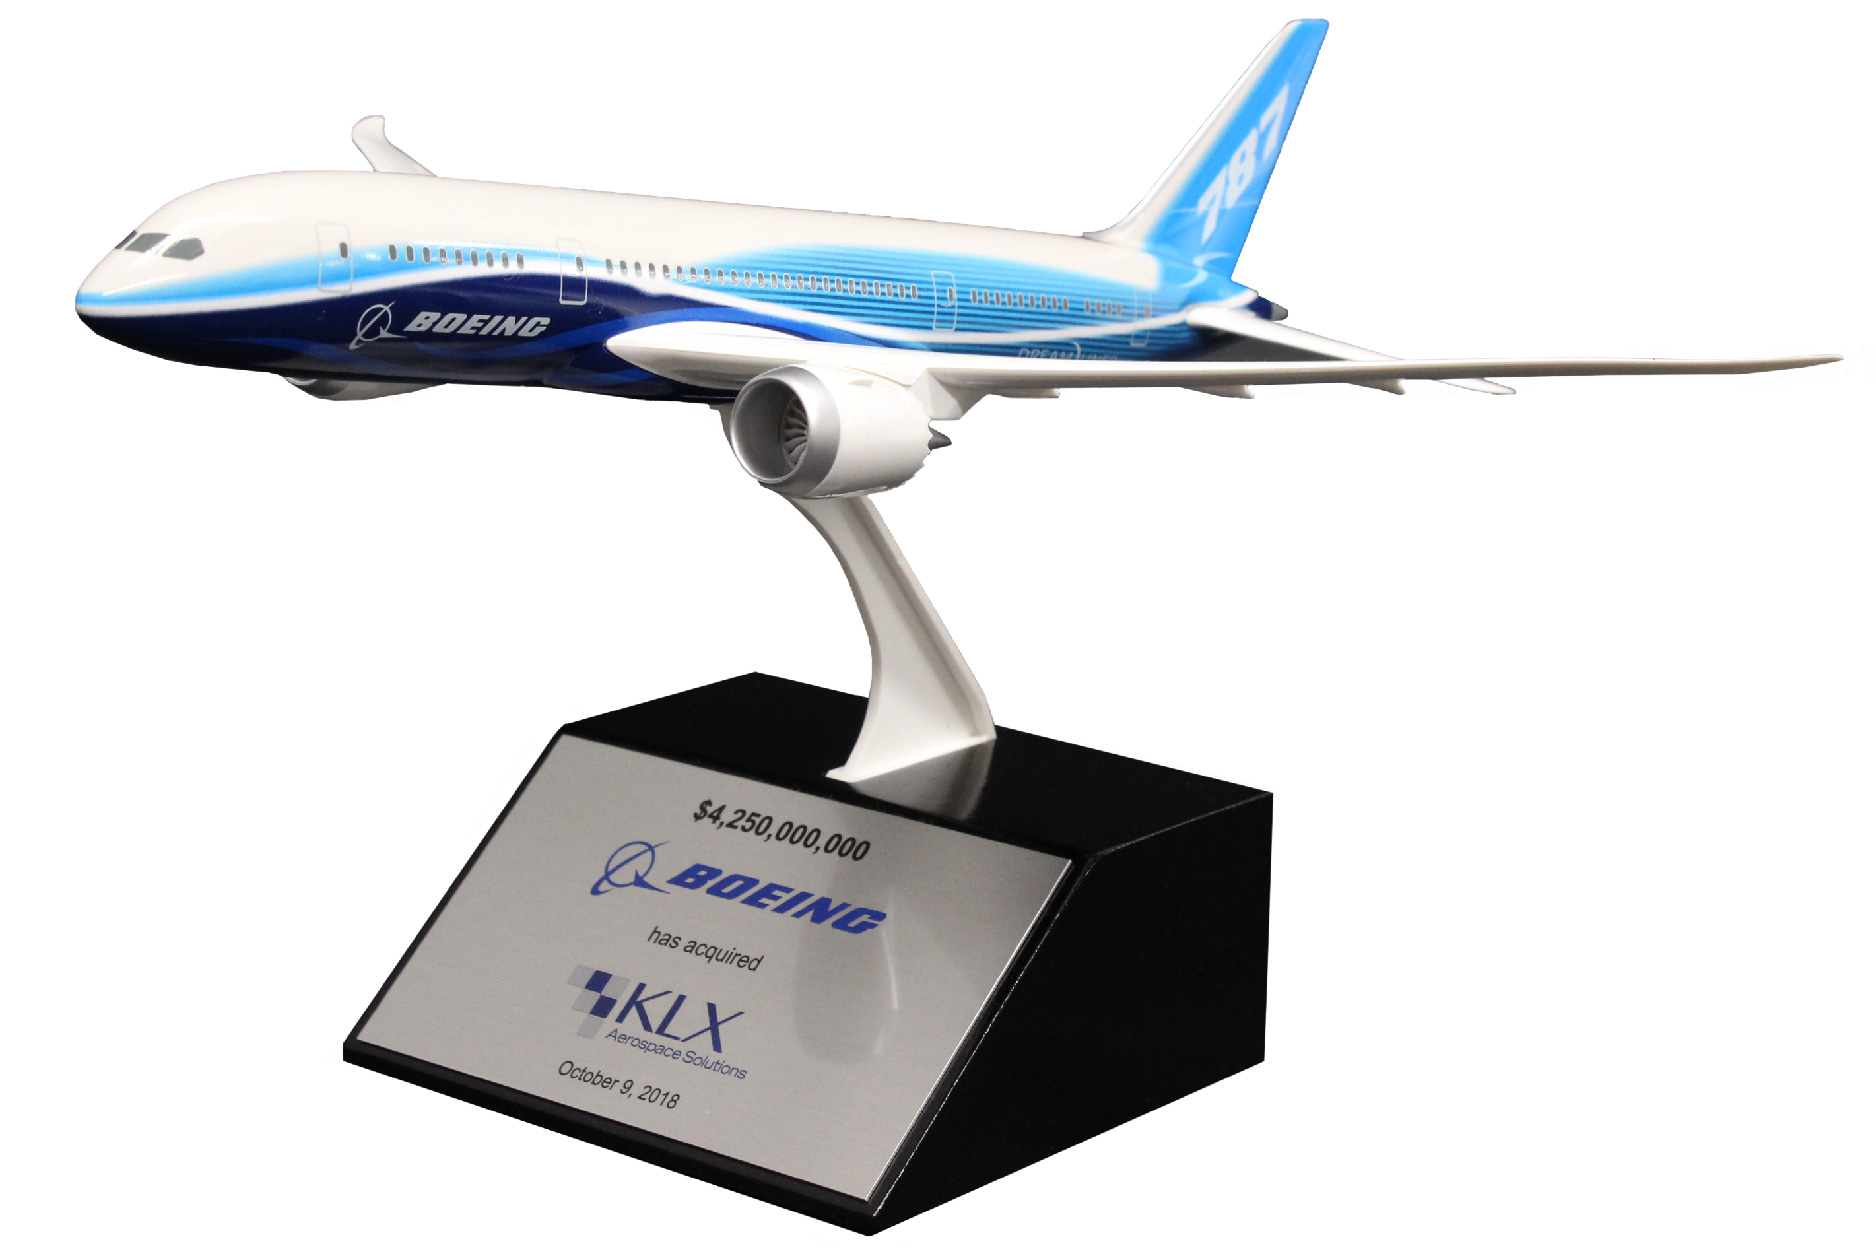 Model plane with custom branding is mounted on a tapered base.